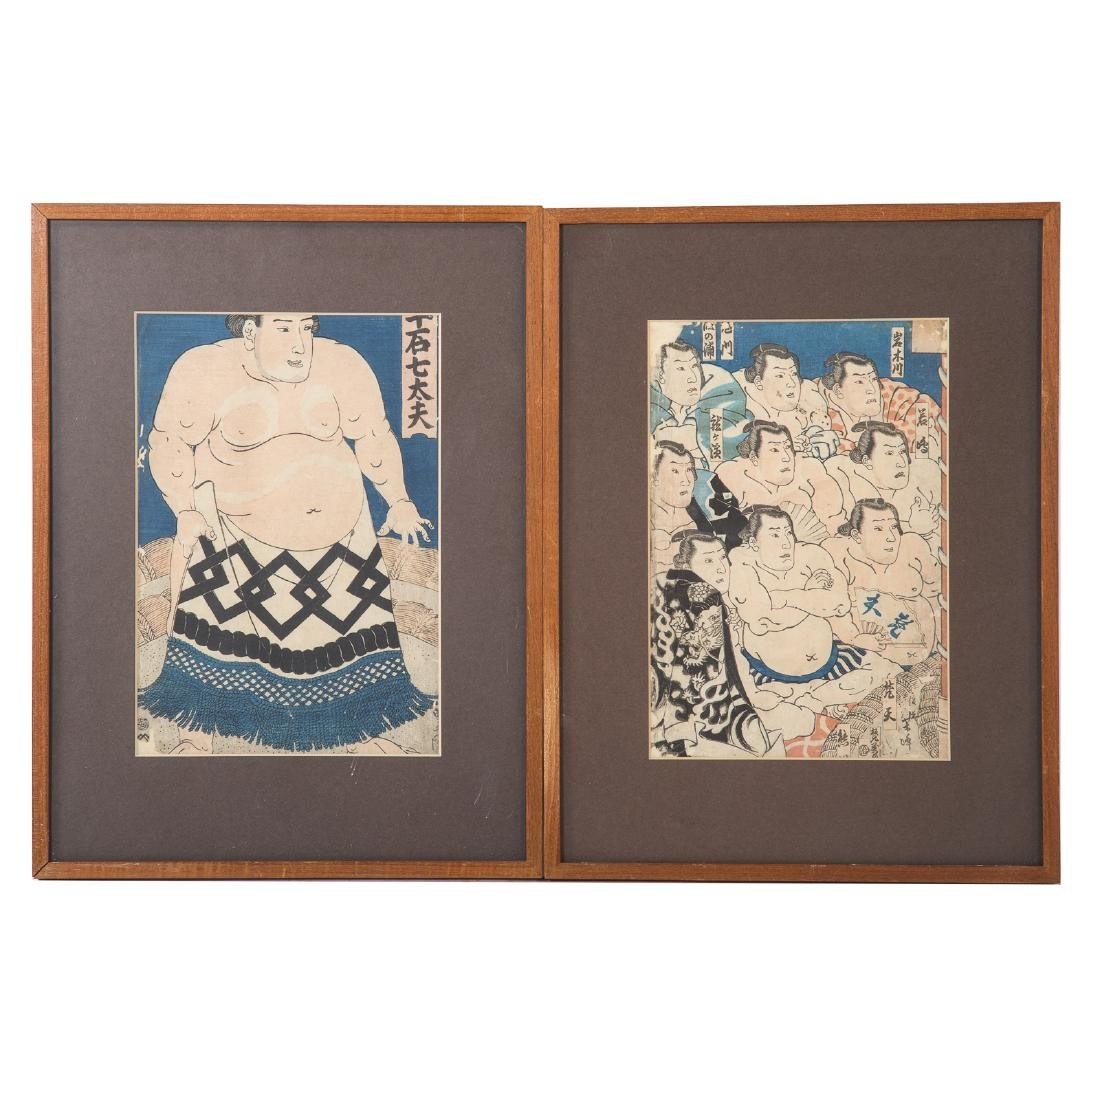 Two Japanese color woodblock prints